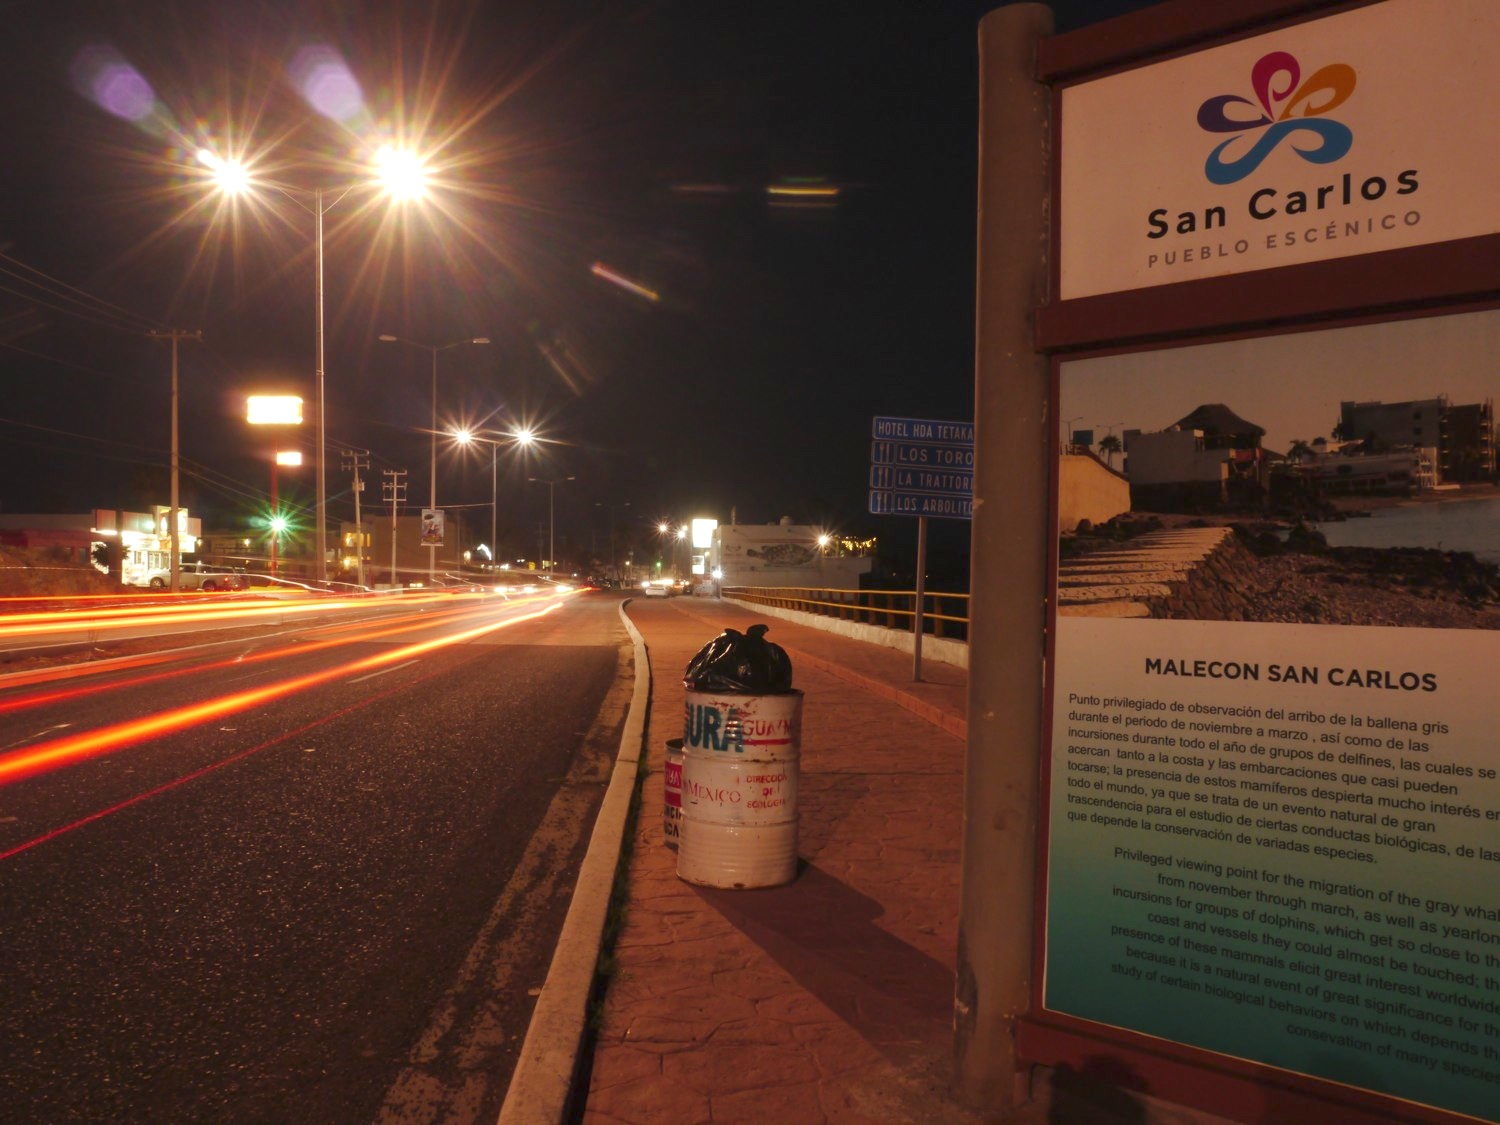 San Carlos can never be a Pueblo Escenico as long as it is owned by Guaymas